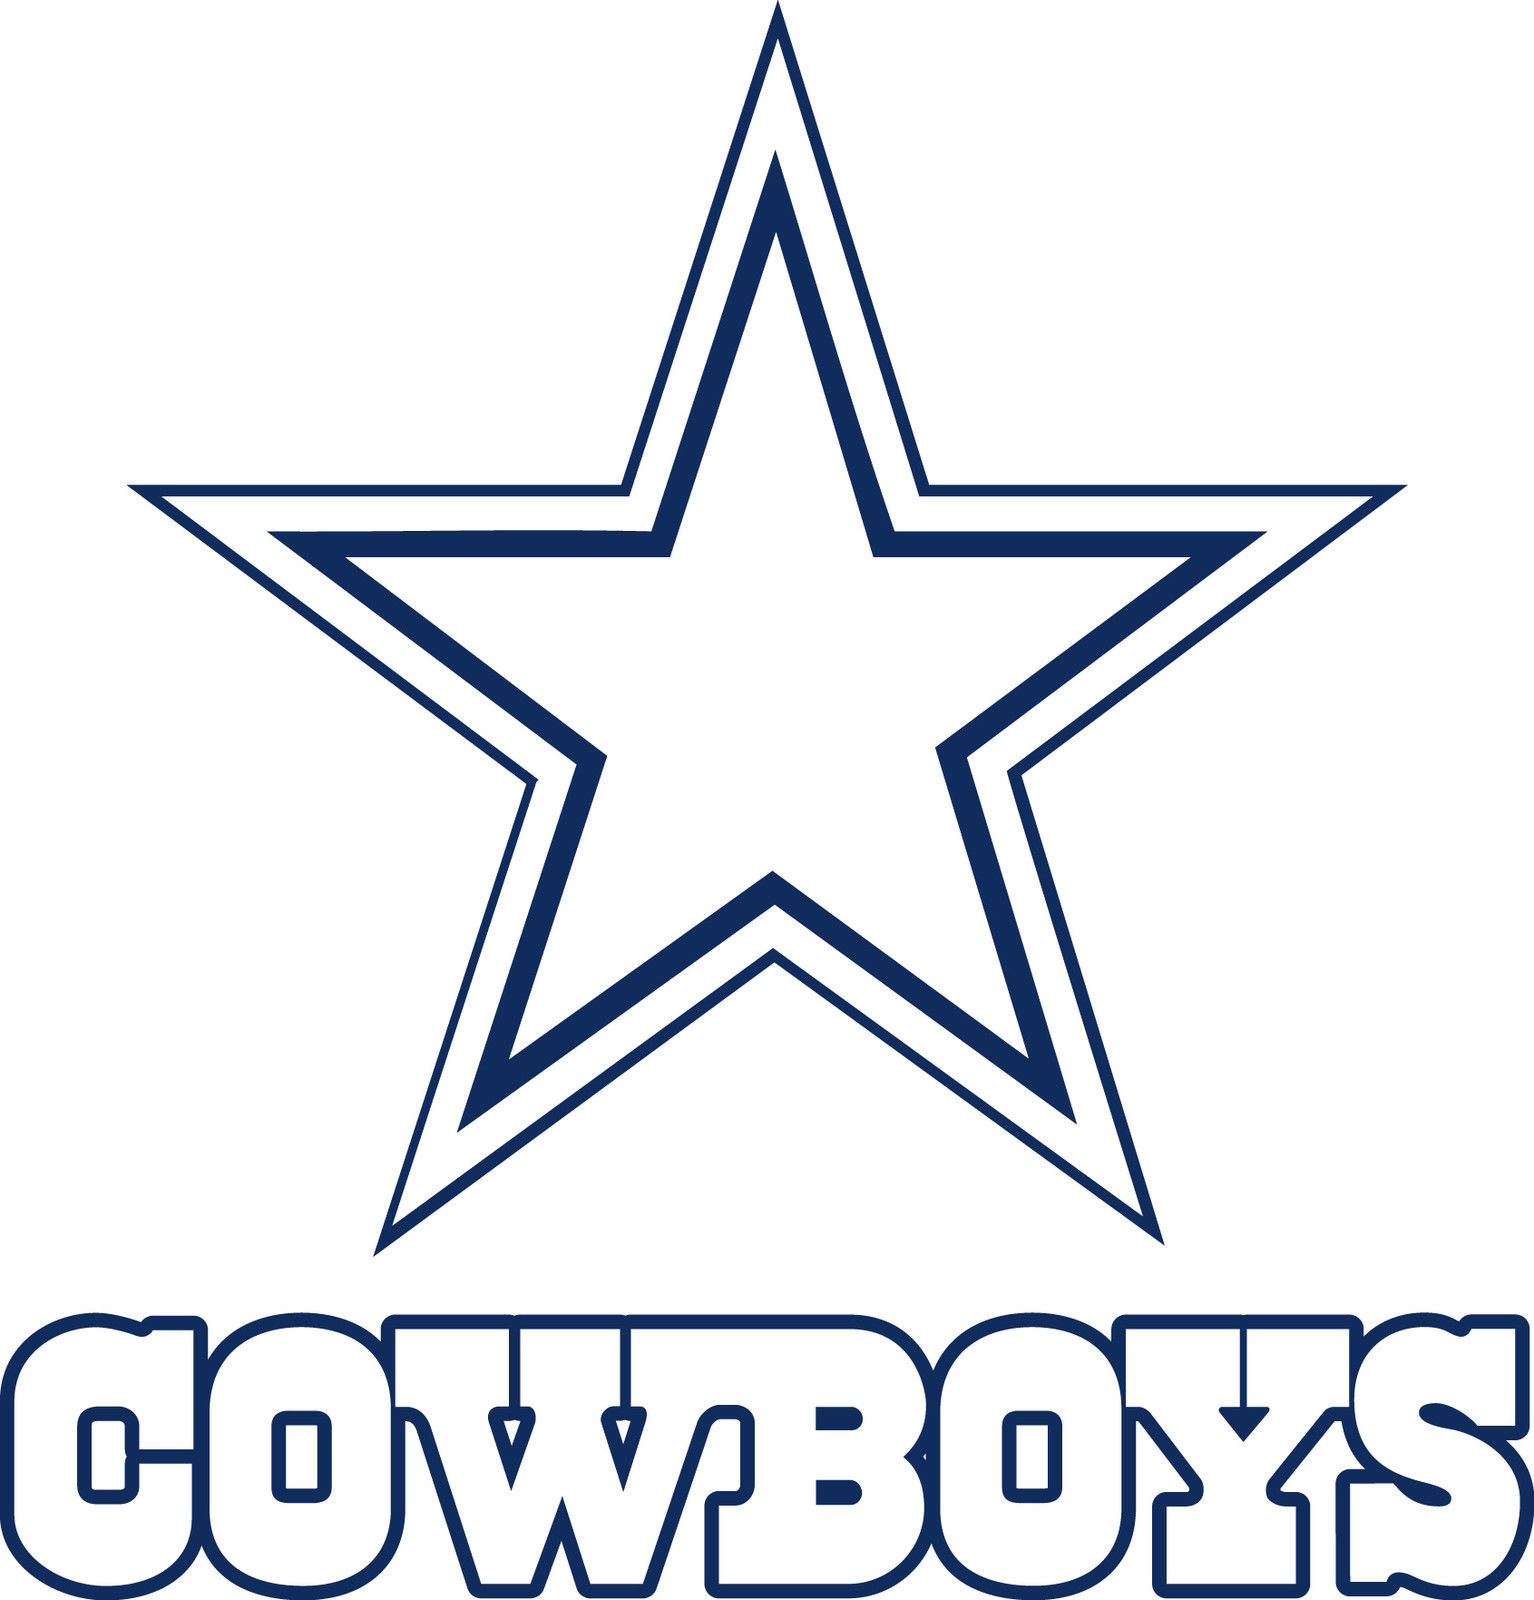 Dallas cowboys clipart painting. Texans logo drawing at